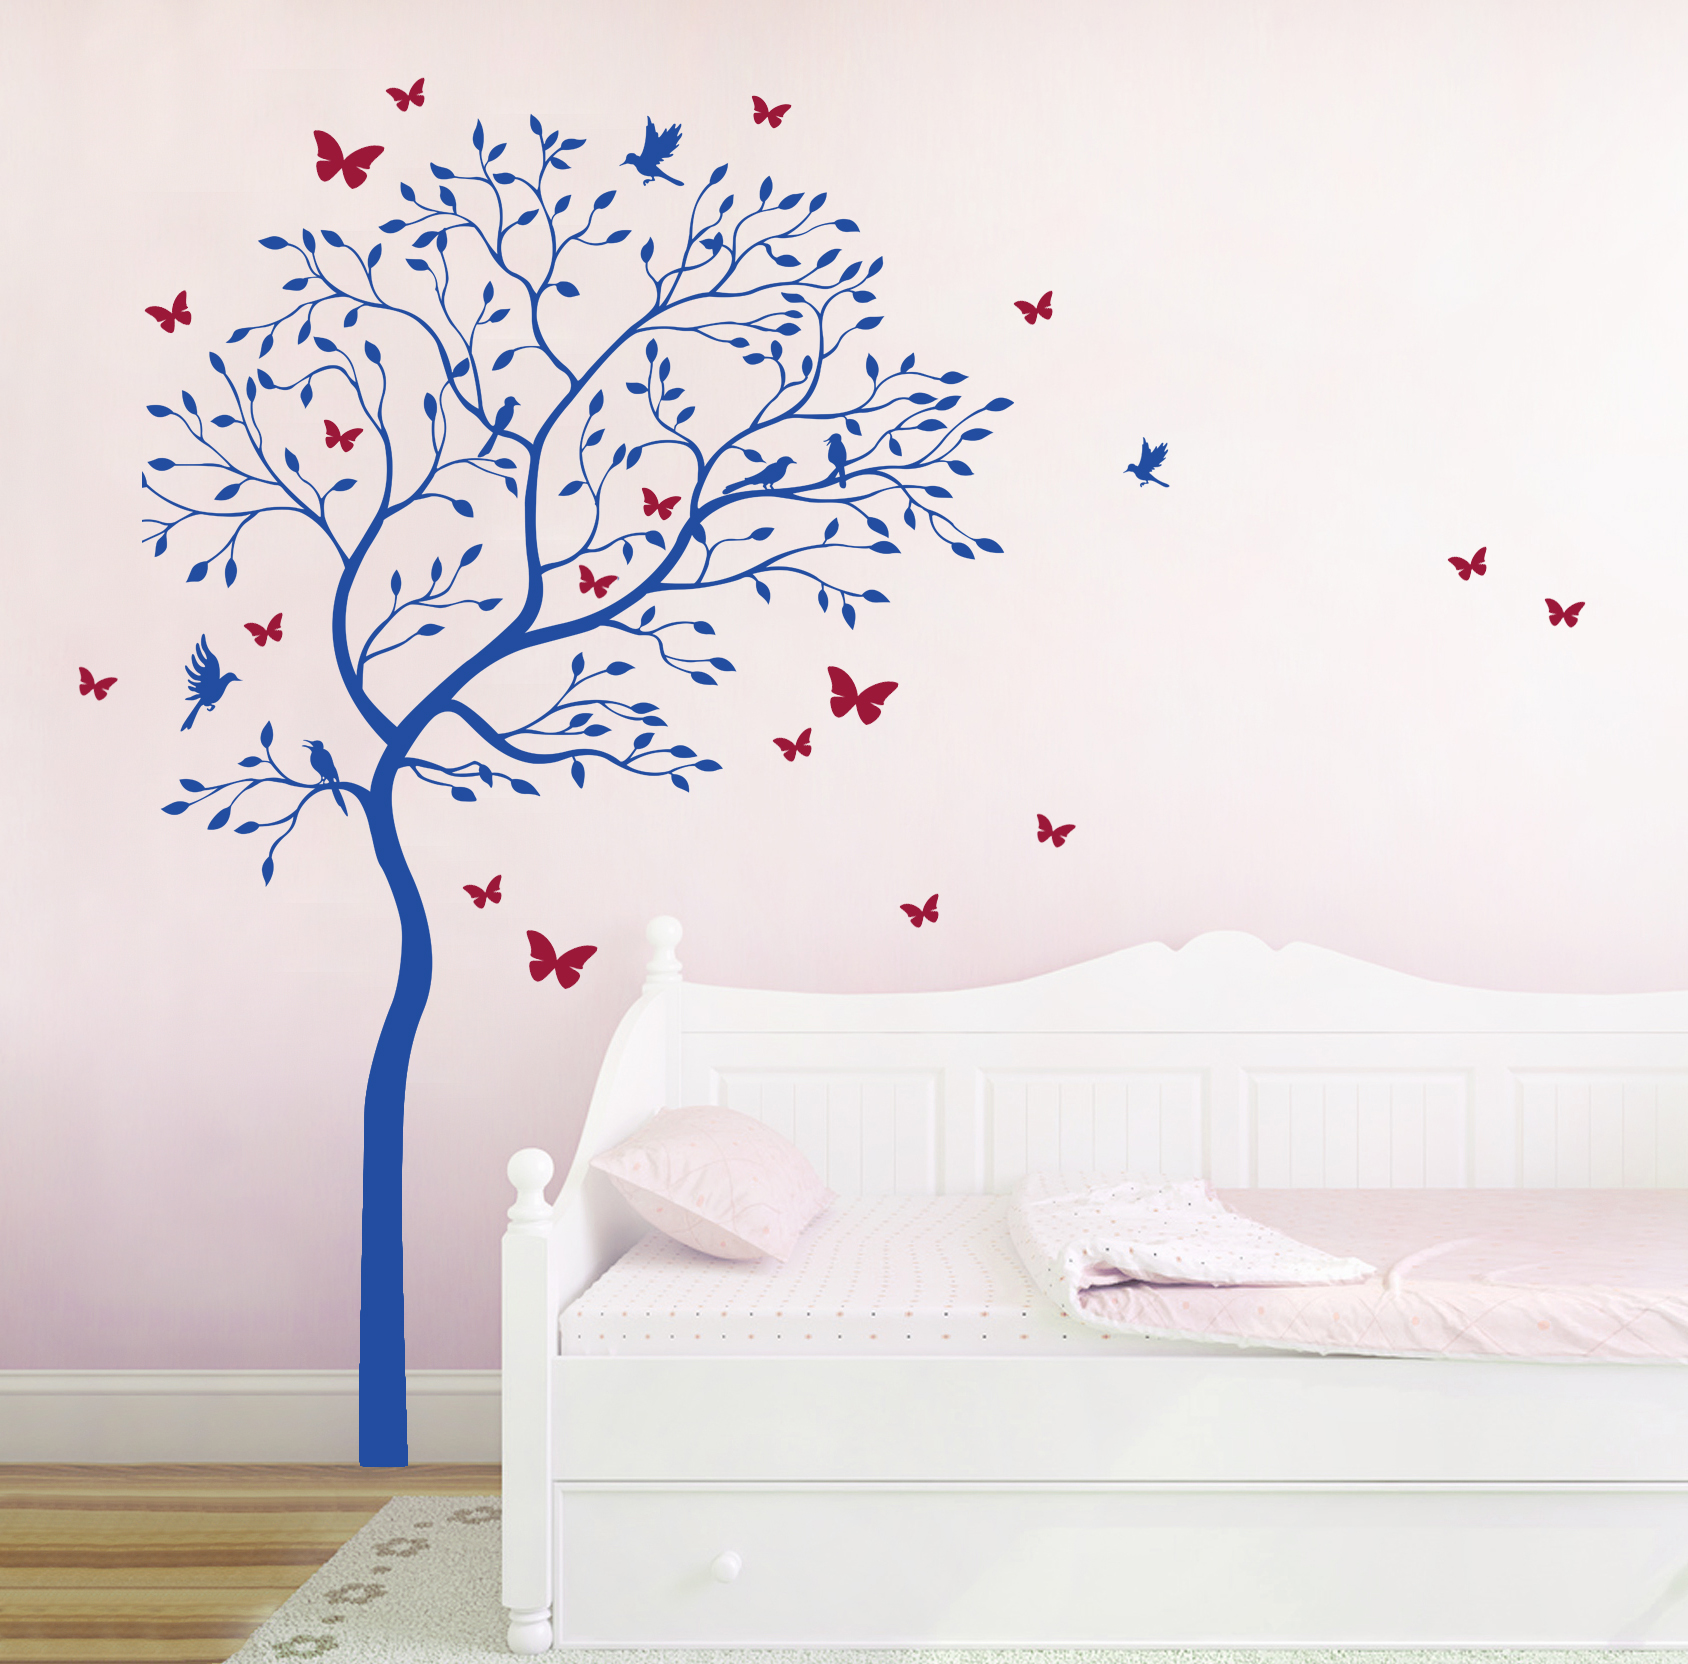 wandtattoo baum mit kolibris und schmetterlinge zweifarbig m1535 ebay. Black Bedroom Furniture Sets. Home Design Ideas